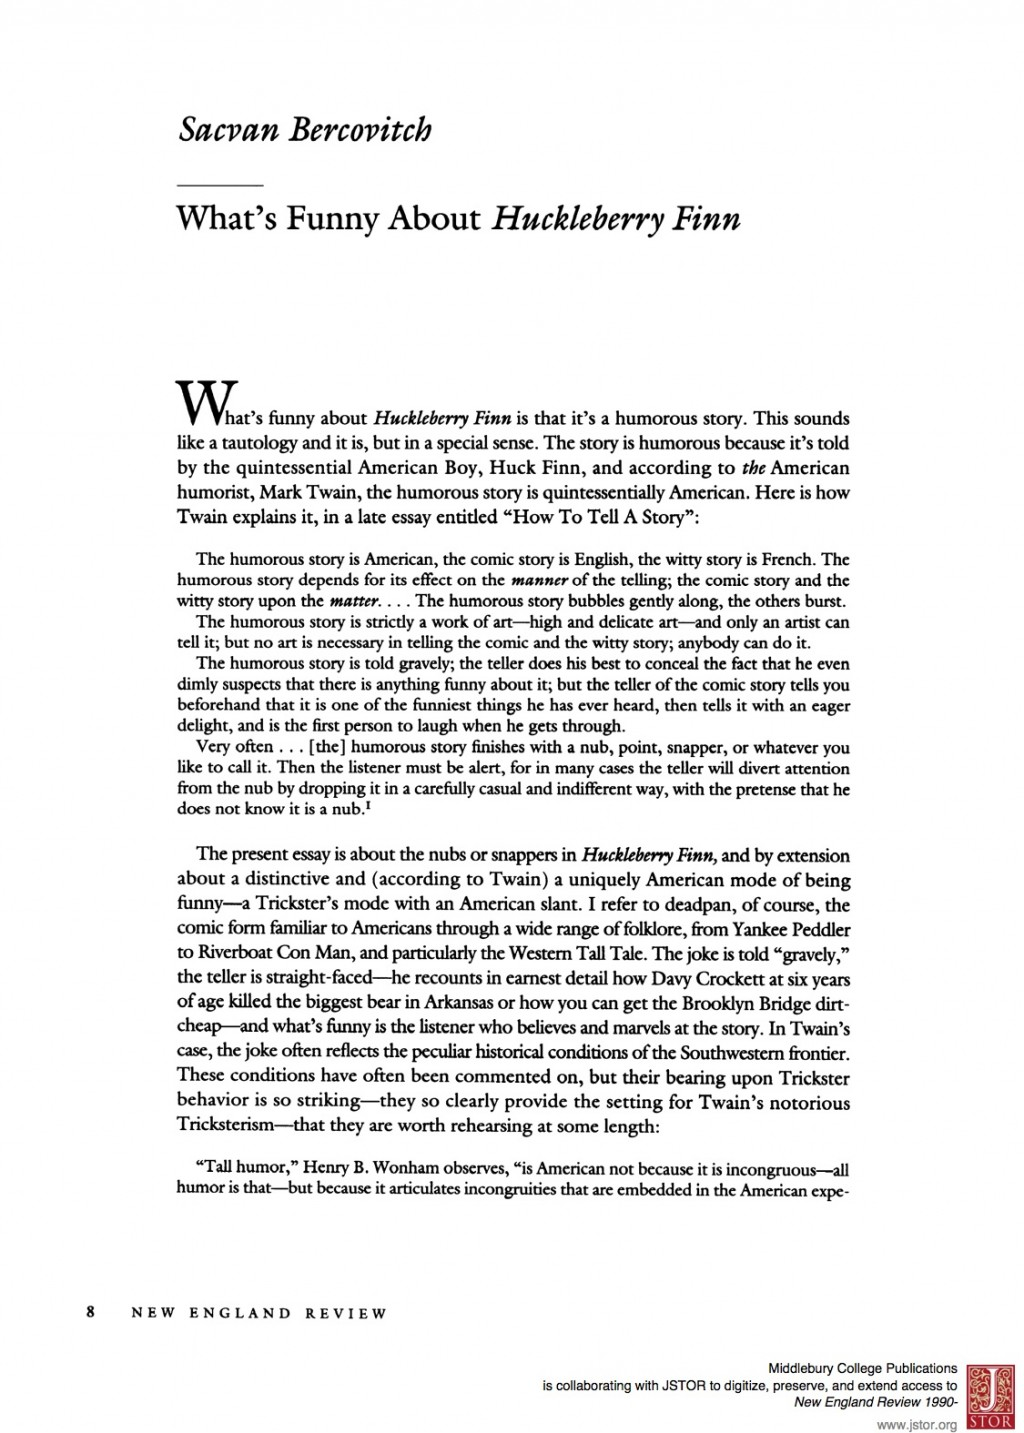 001 Essay Example Whatsfunnyabouthuckfinn Huck Awesome Finn Huckleberry Argumentative Topics The Adventures Of Prompts Large